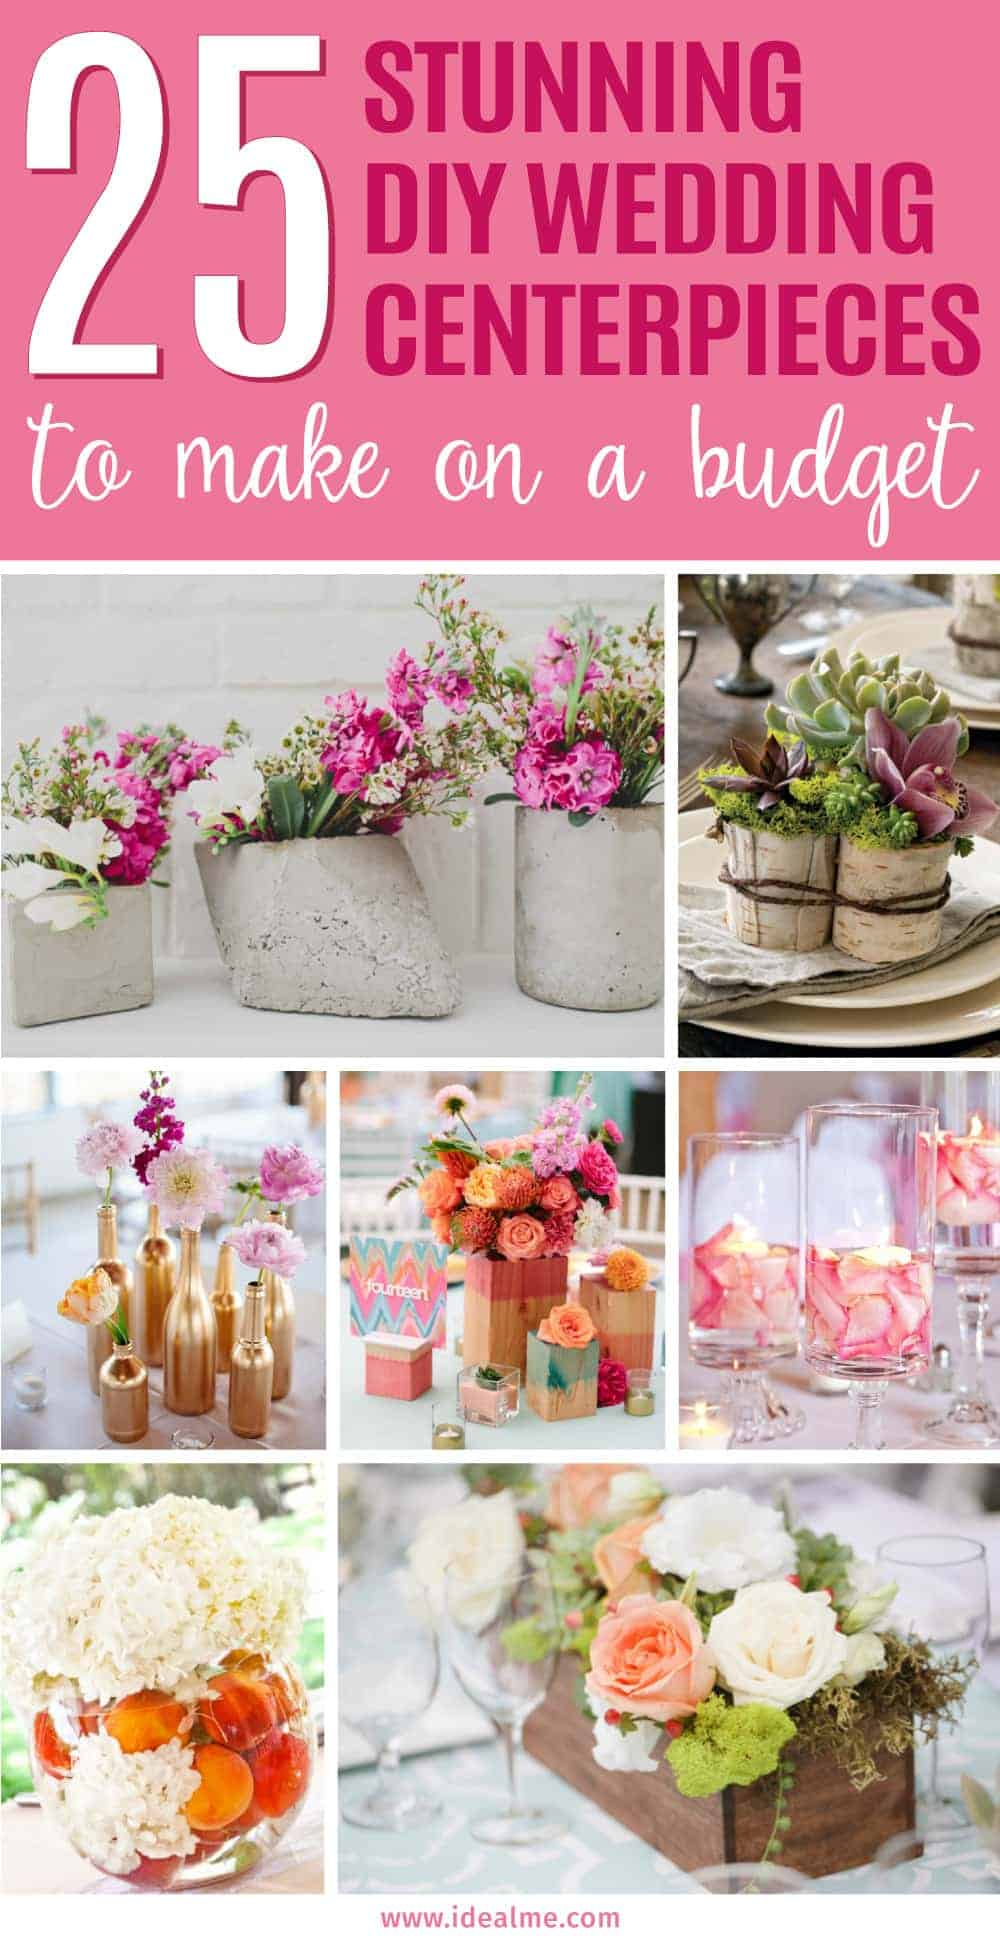 25 Stunning DIY Wedding Centerpieces to Make on a Budget - Ideal Me